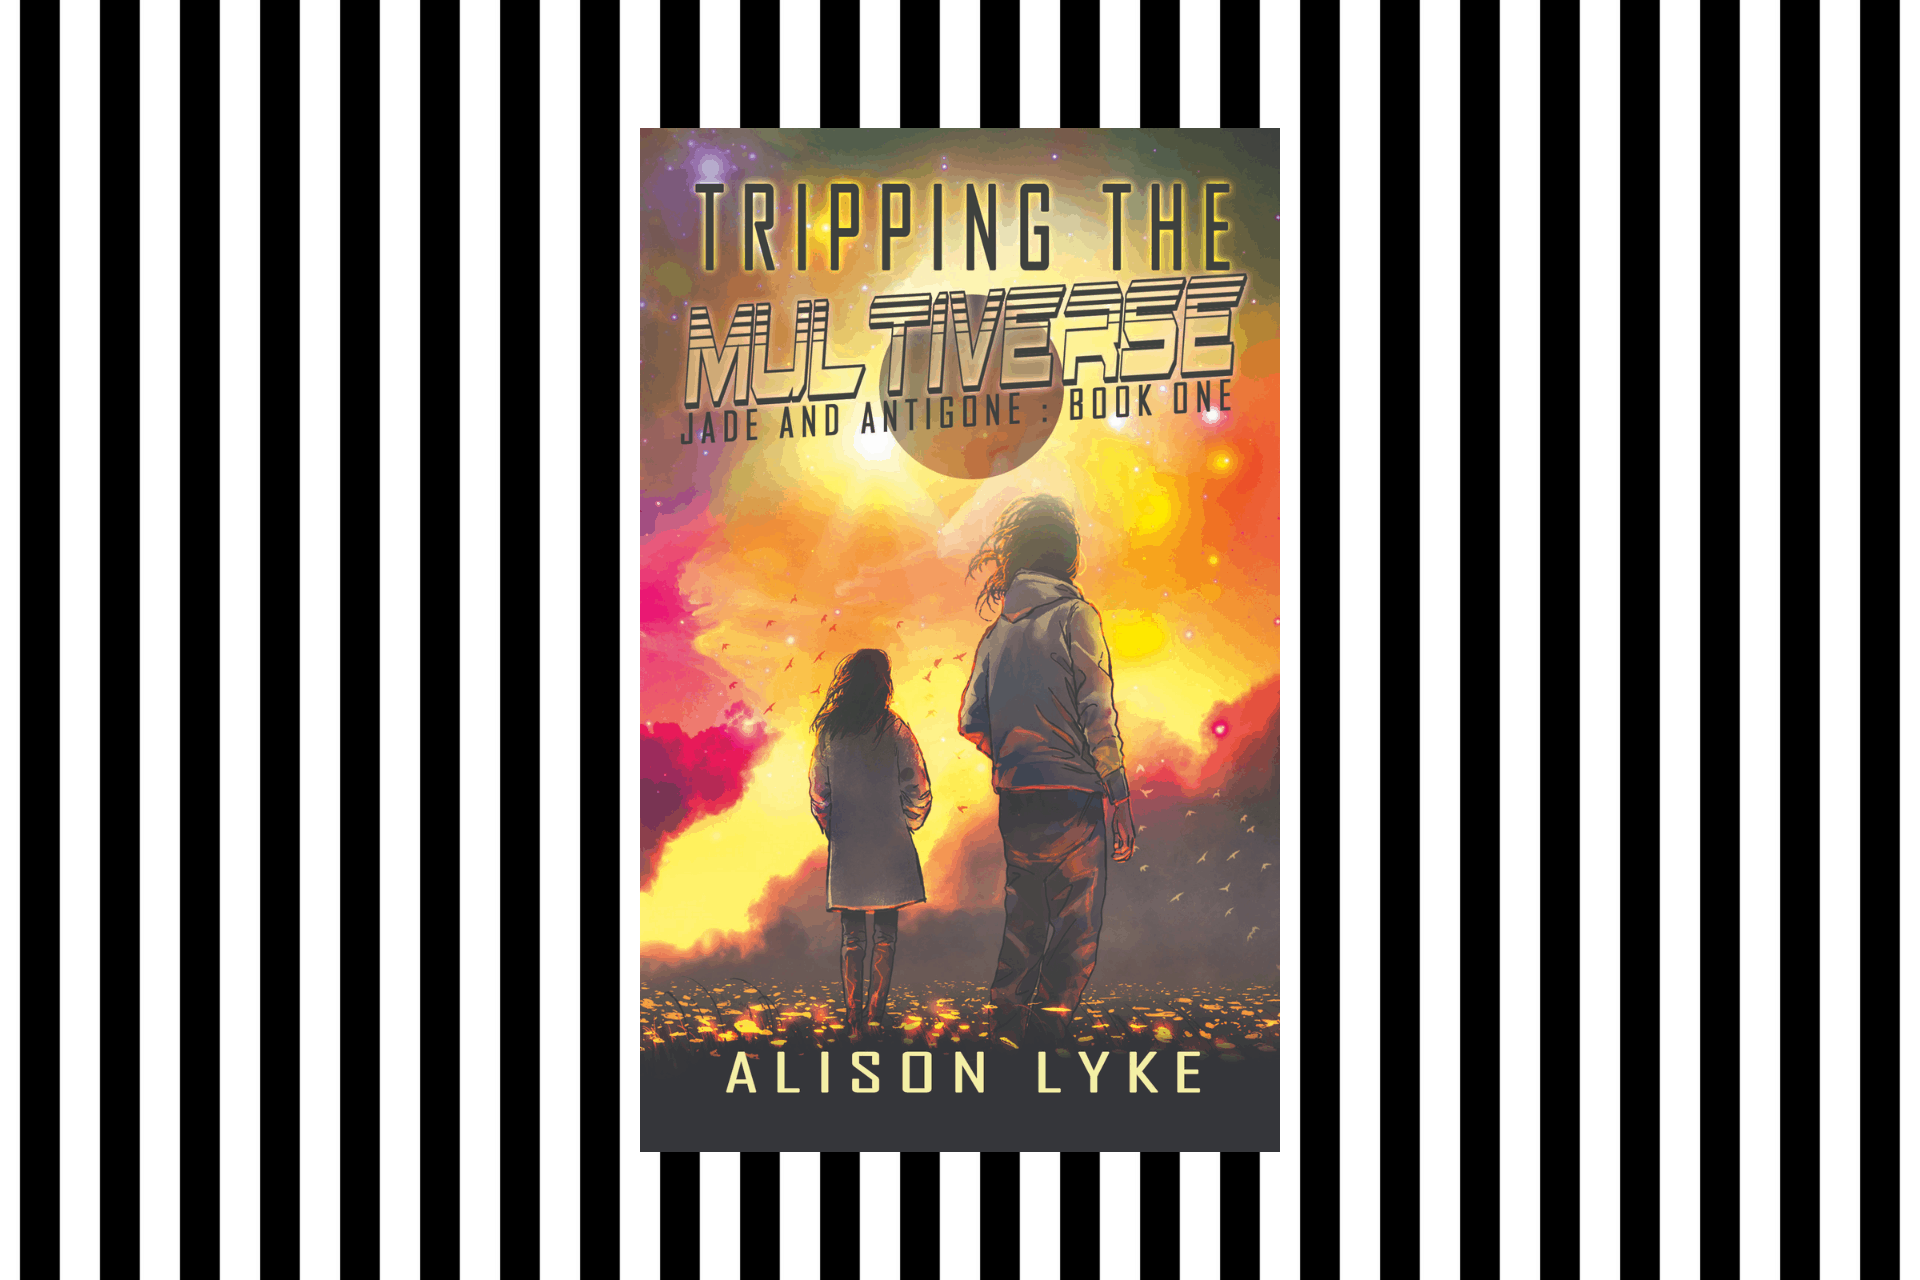 The cover of Tripping the Multiverse by Alison Lyke